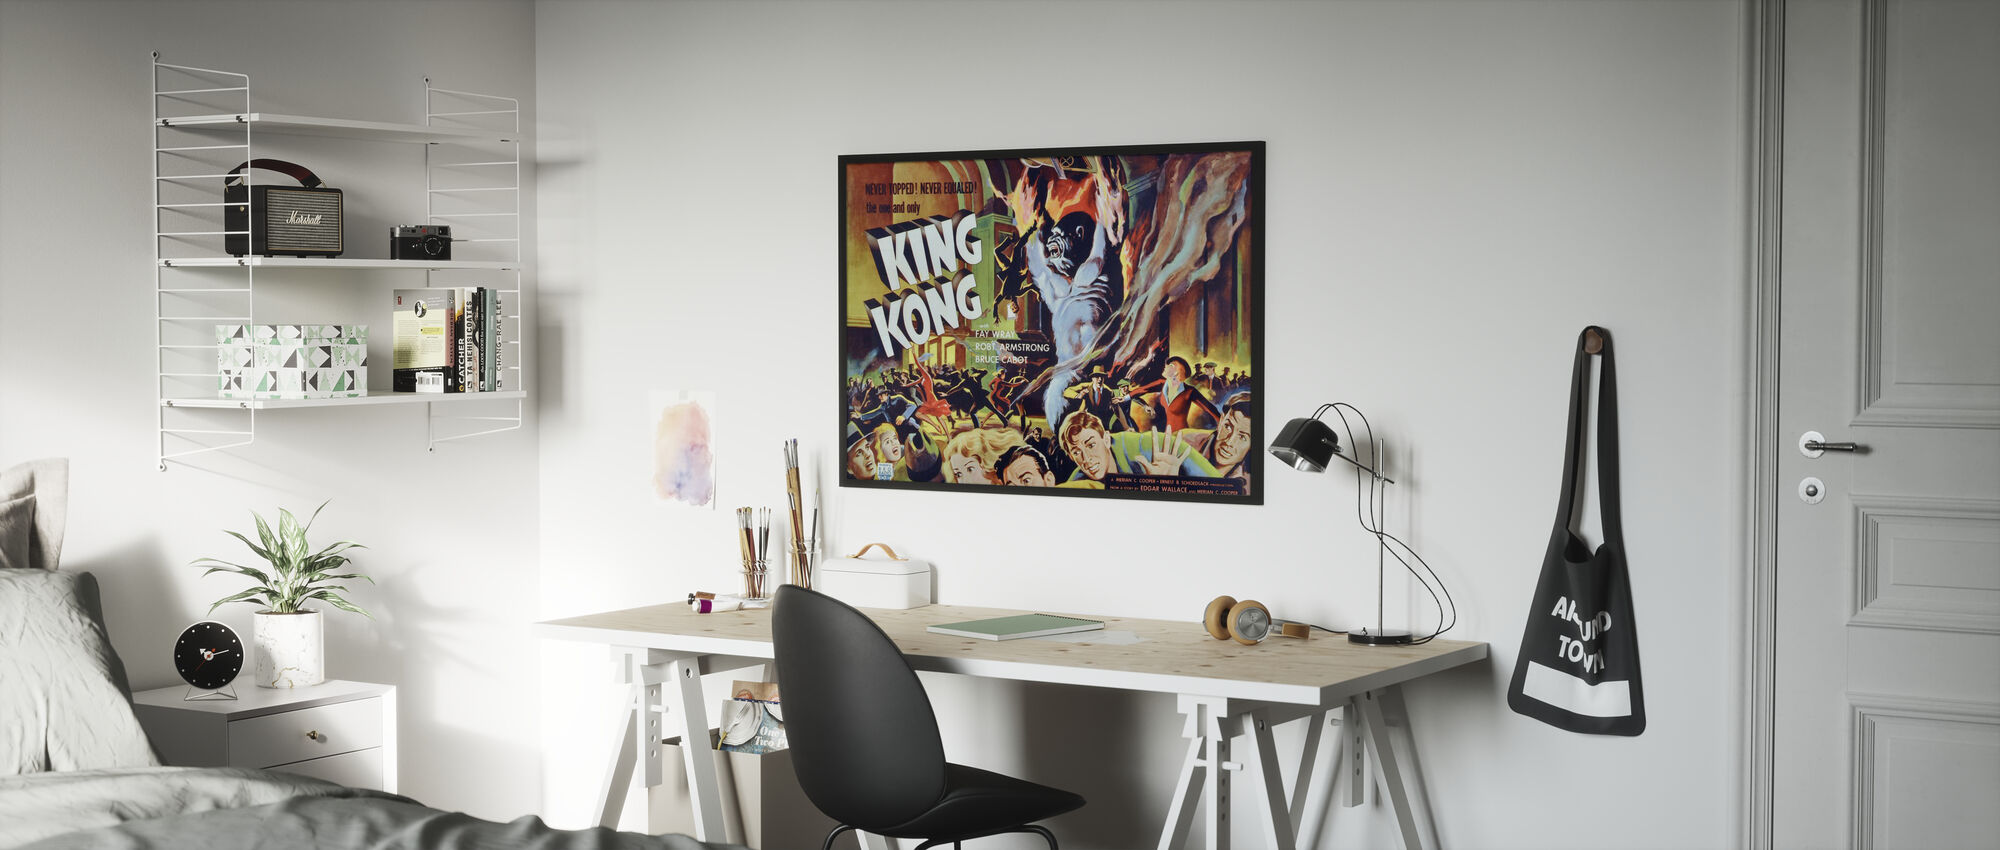 King Kong - Poster - Kids Room